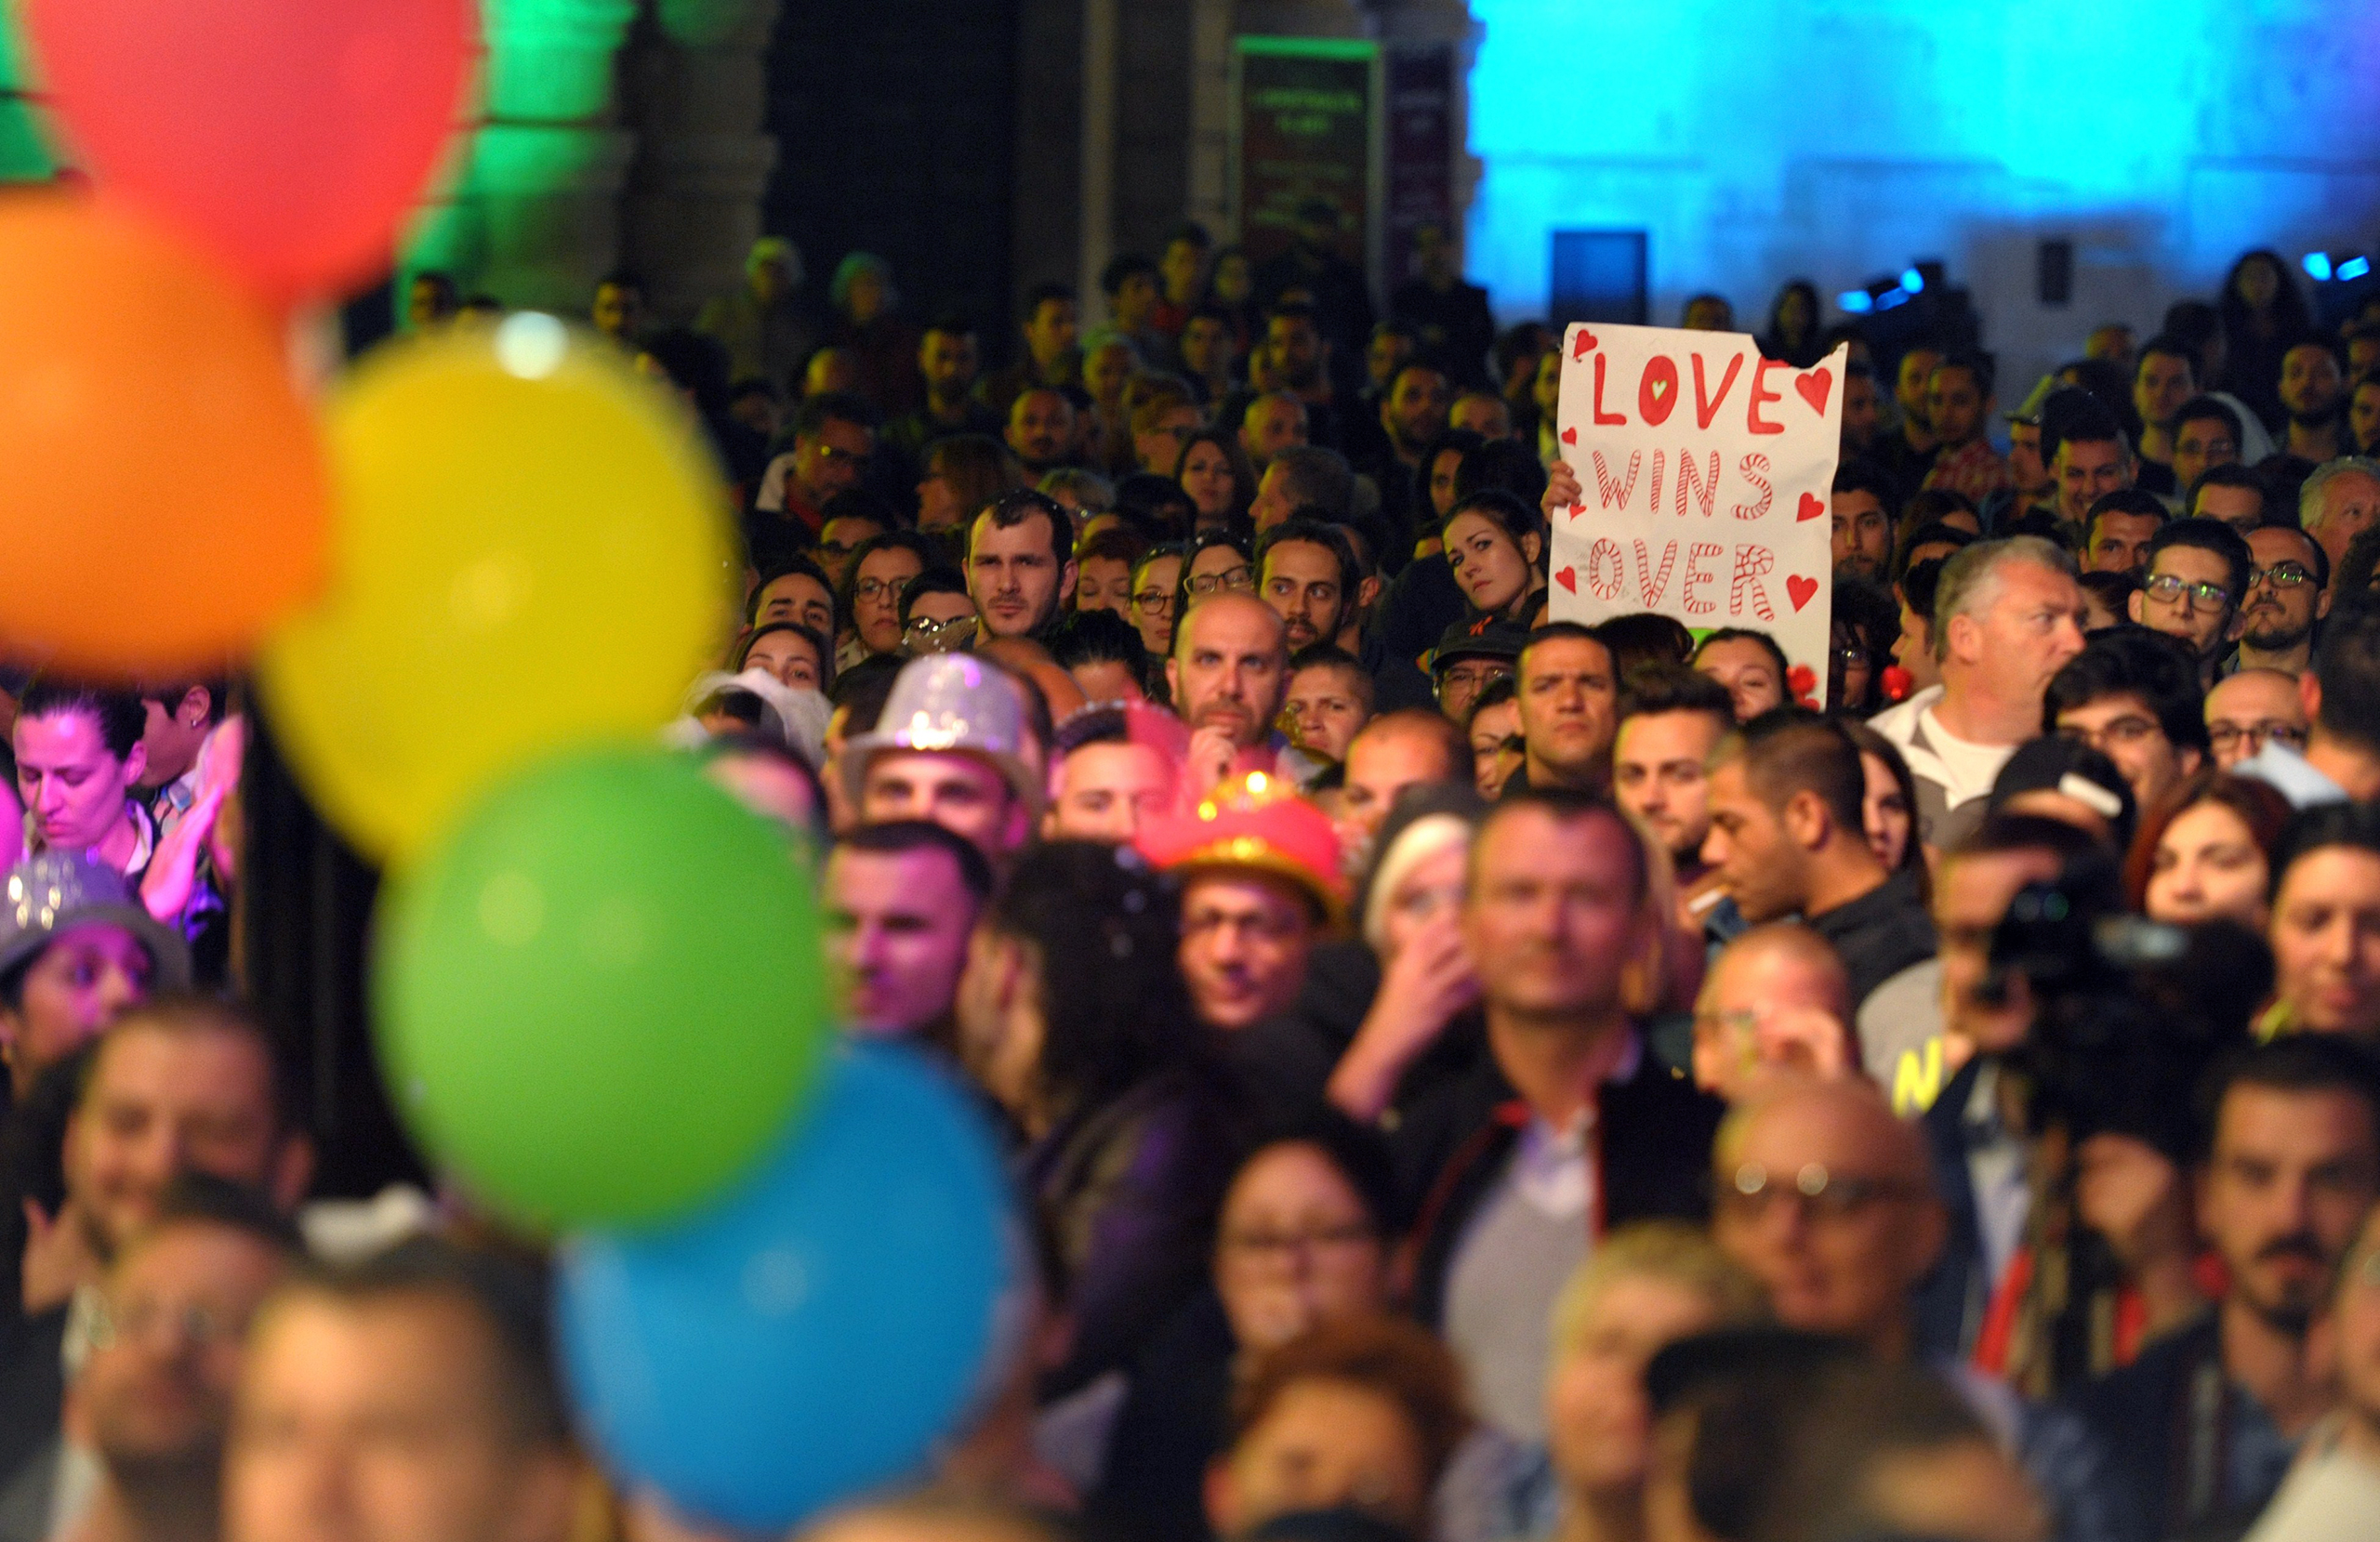 People gather to celebrate in Saint George's Square after the Maltese parliament approved a civil unions bill in Valletta on April 14, 2014. Malta's parliament approved the bill that grants marriage rights to homosexual couples, including the possibility to adopt children.